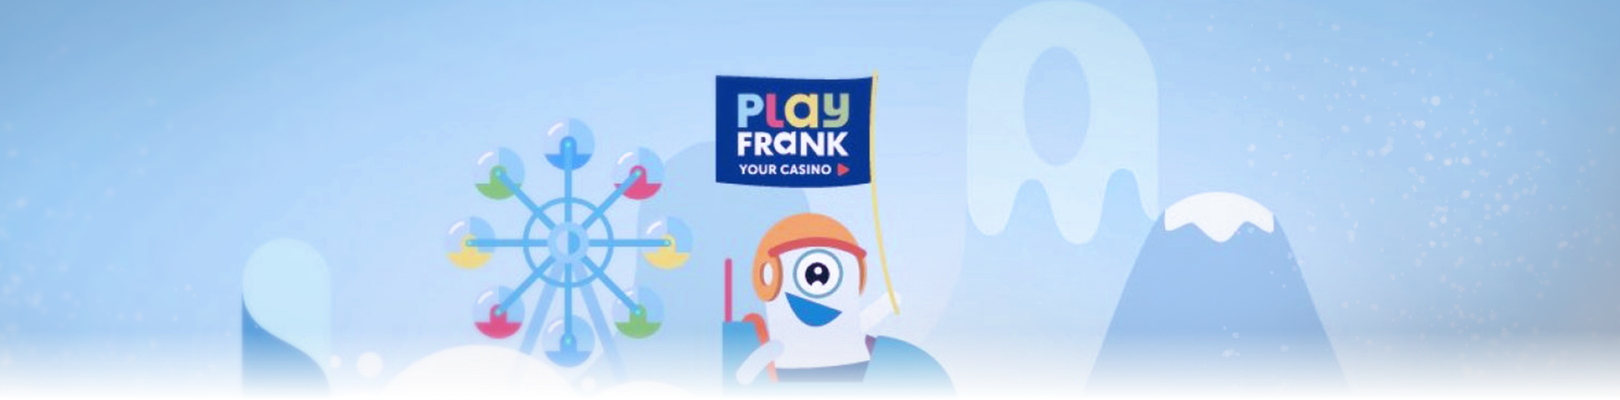 PlayFrank Casino